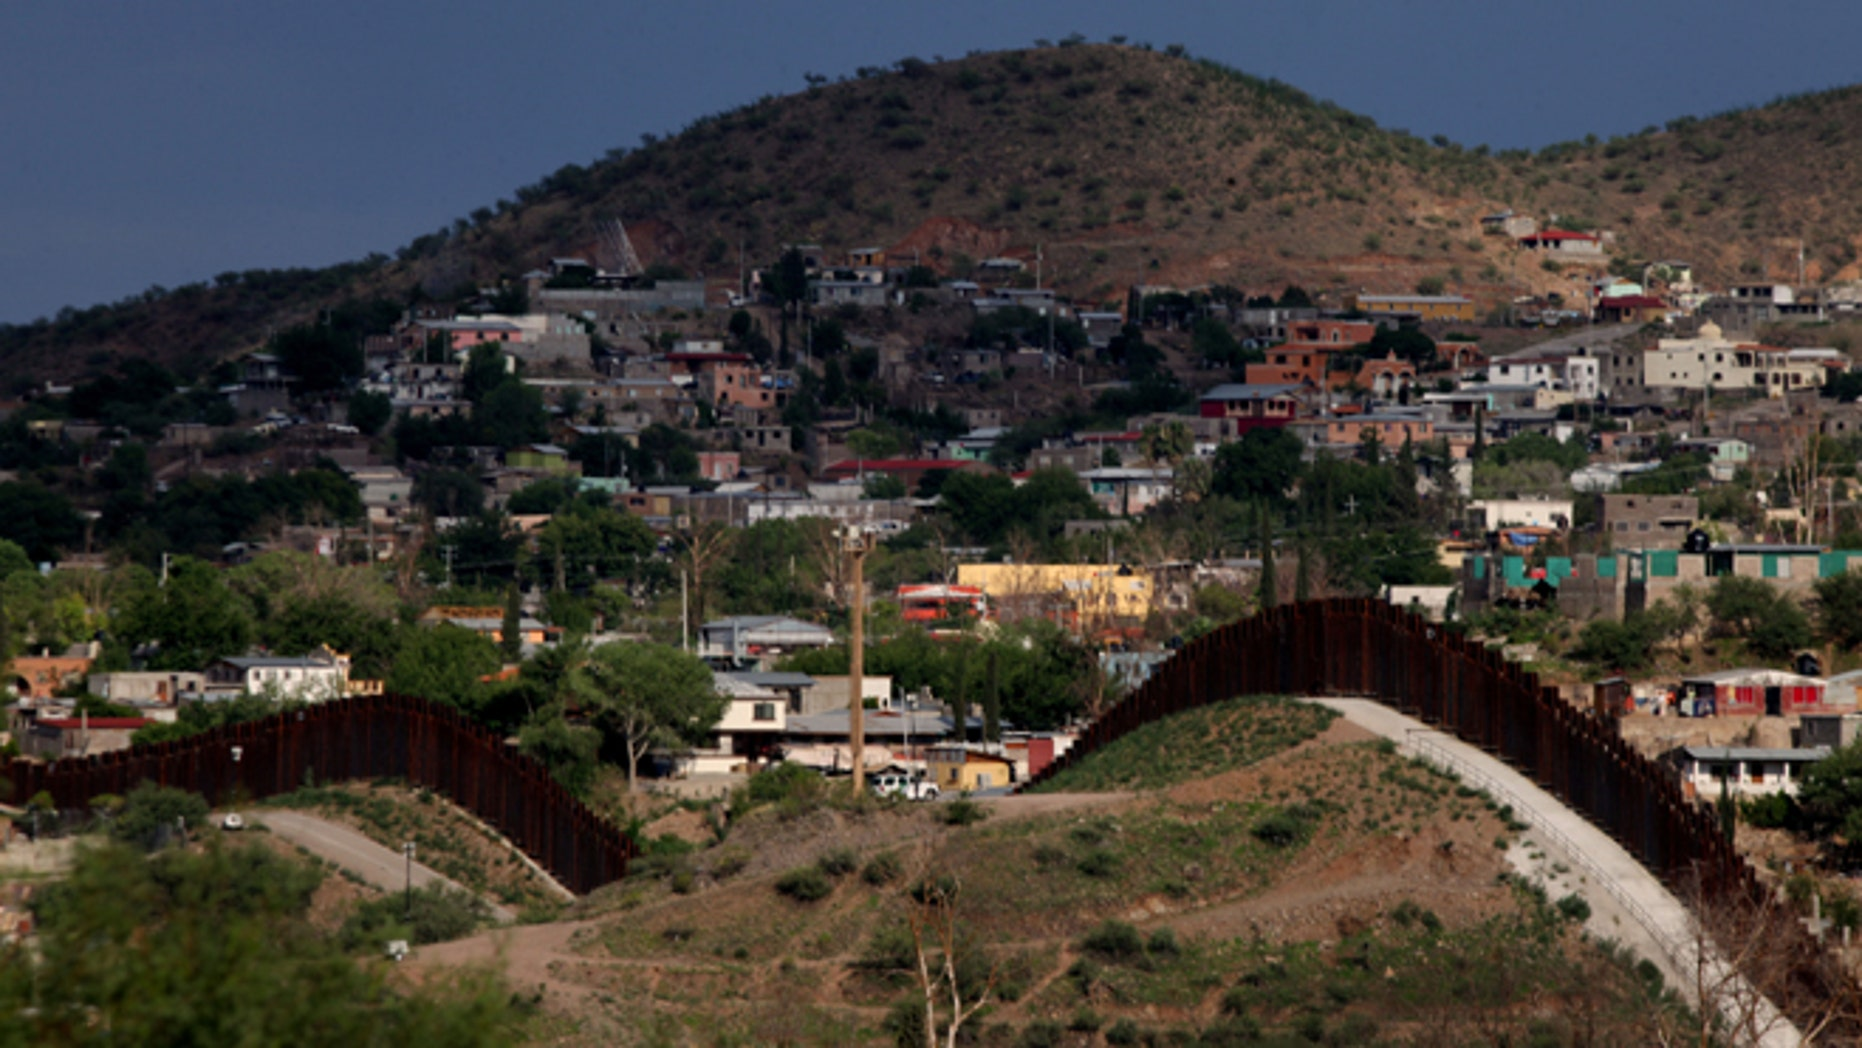 The U.S.- Mexico border wall in Nogales, Arizona. (Photo by Sandy Huffaker/Getty Images)